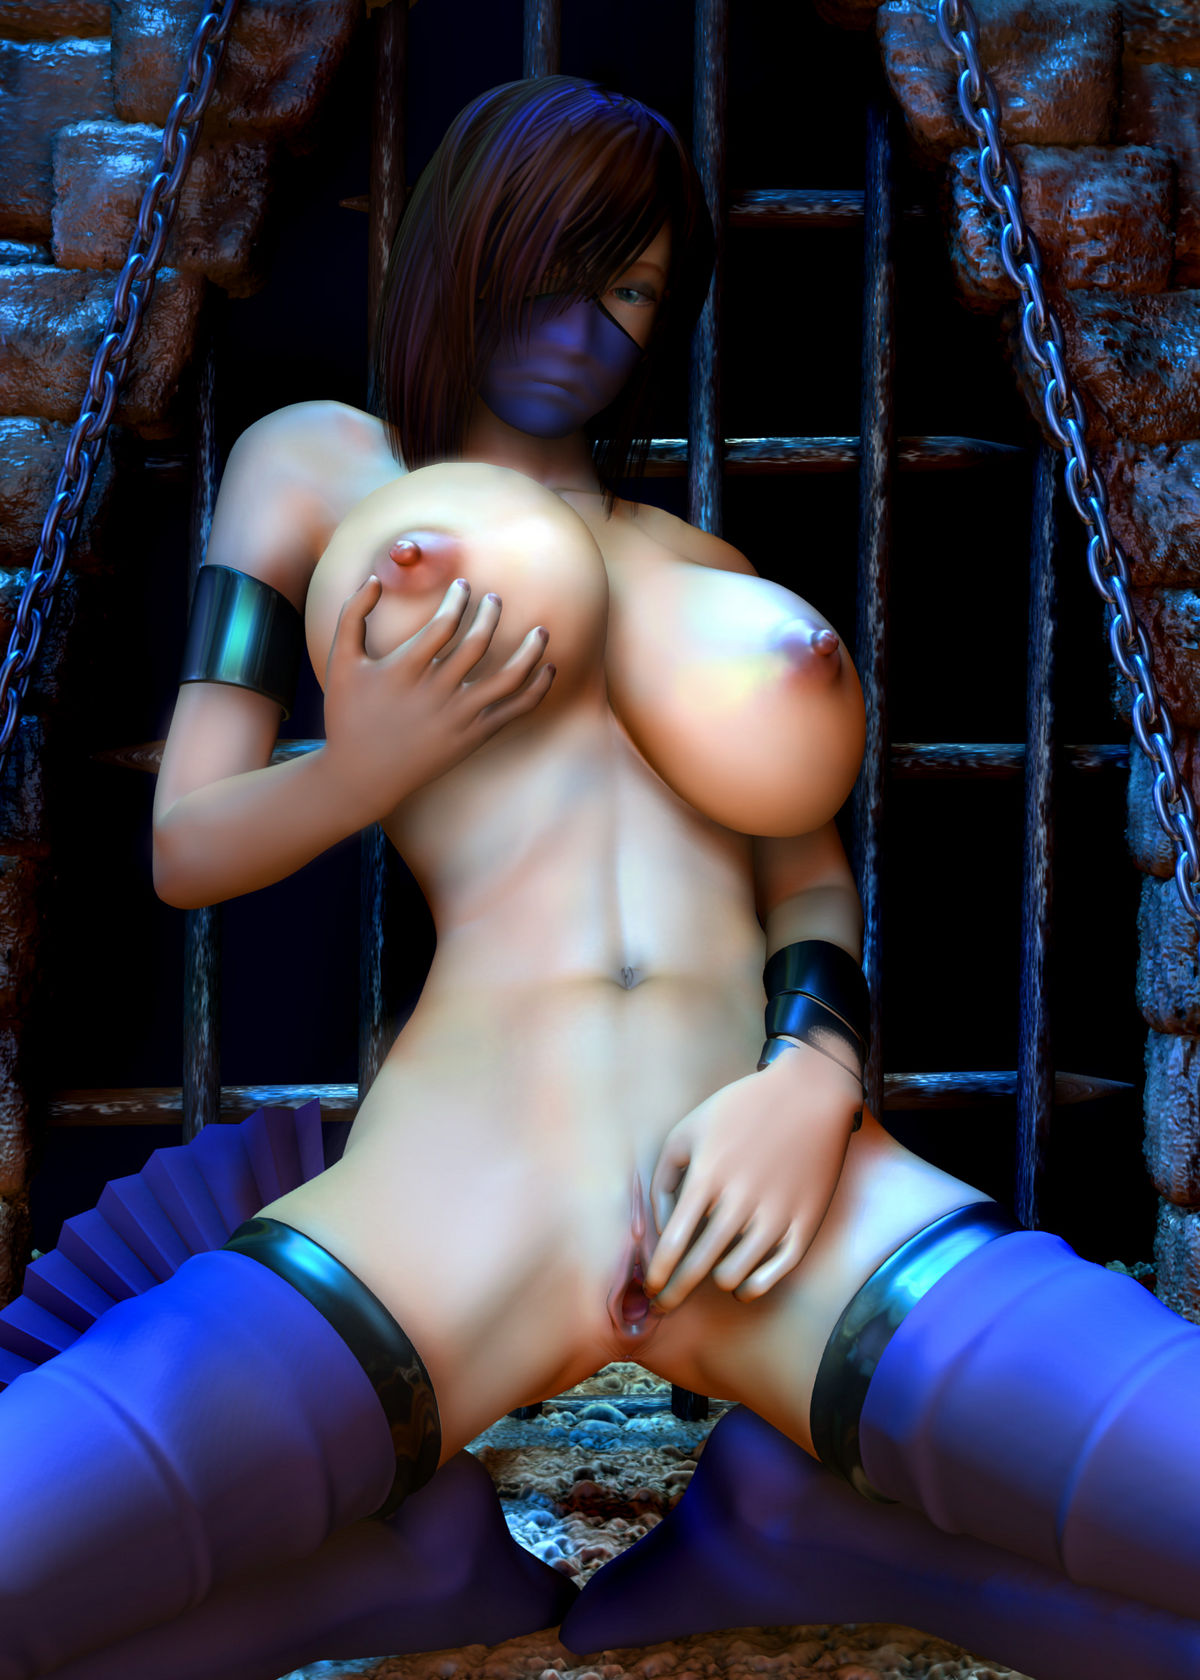 Sexy mortal kombat girls naked remarkable